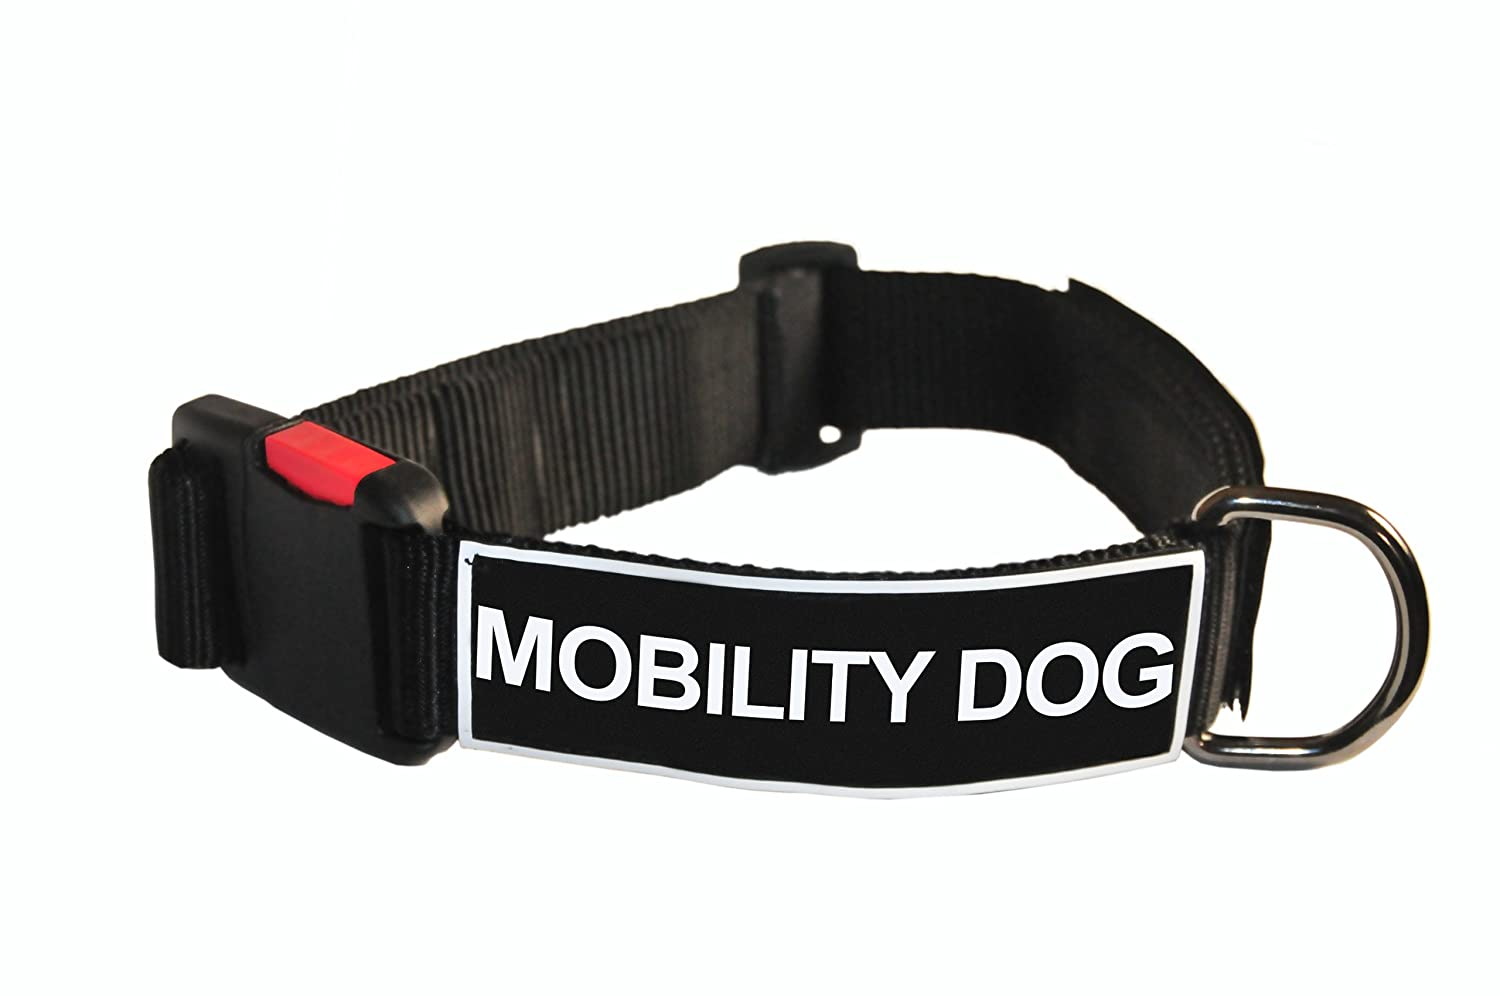 Dean and Tyler Patch Collar , Nylon Dog Collar with MOBILITY DOG Patches Black Size  Small Fits Neck 18-Inch to 21-Inch